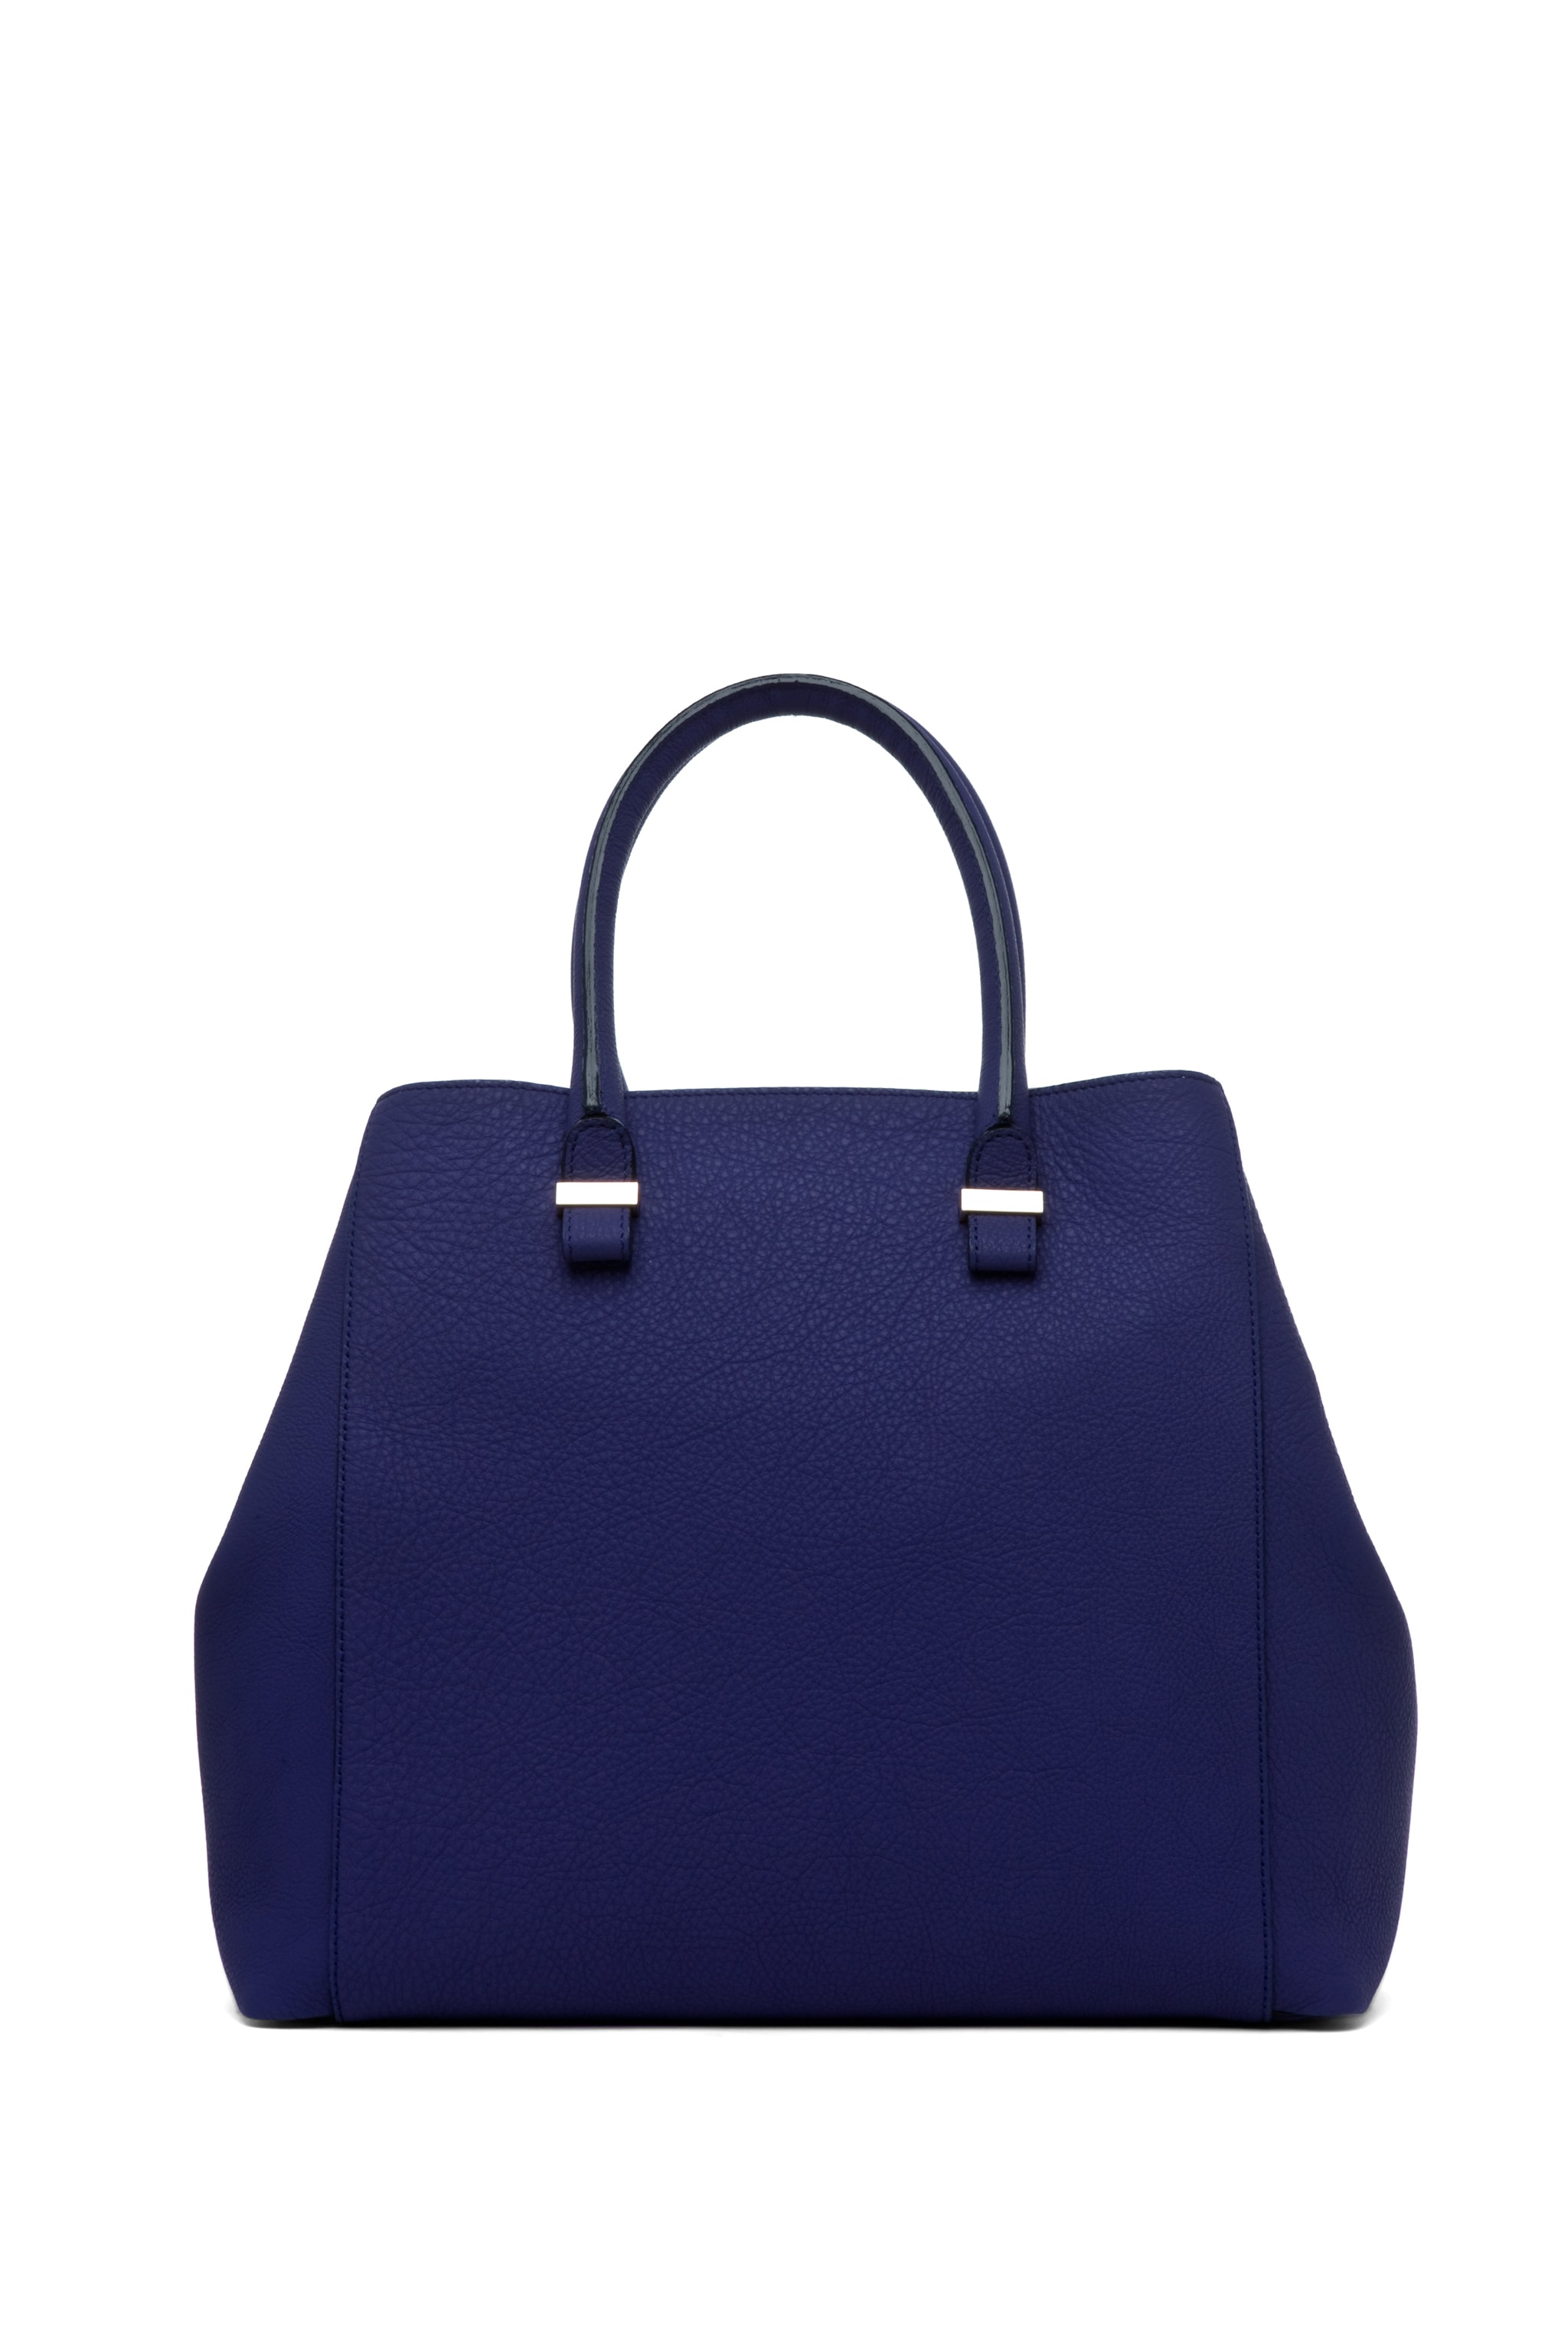 Image 2 of Victoria Beckham Georgia Tote in Purple & Powder